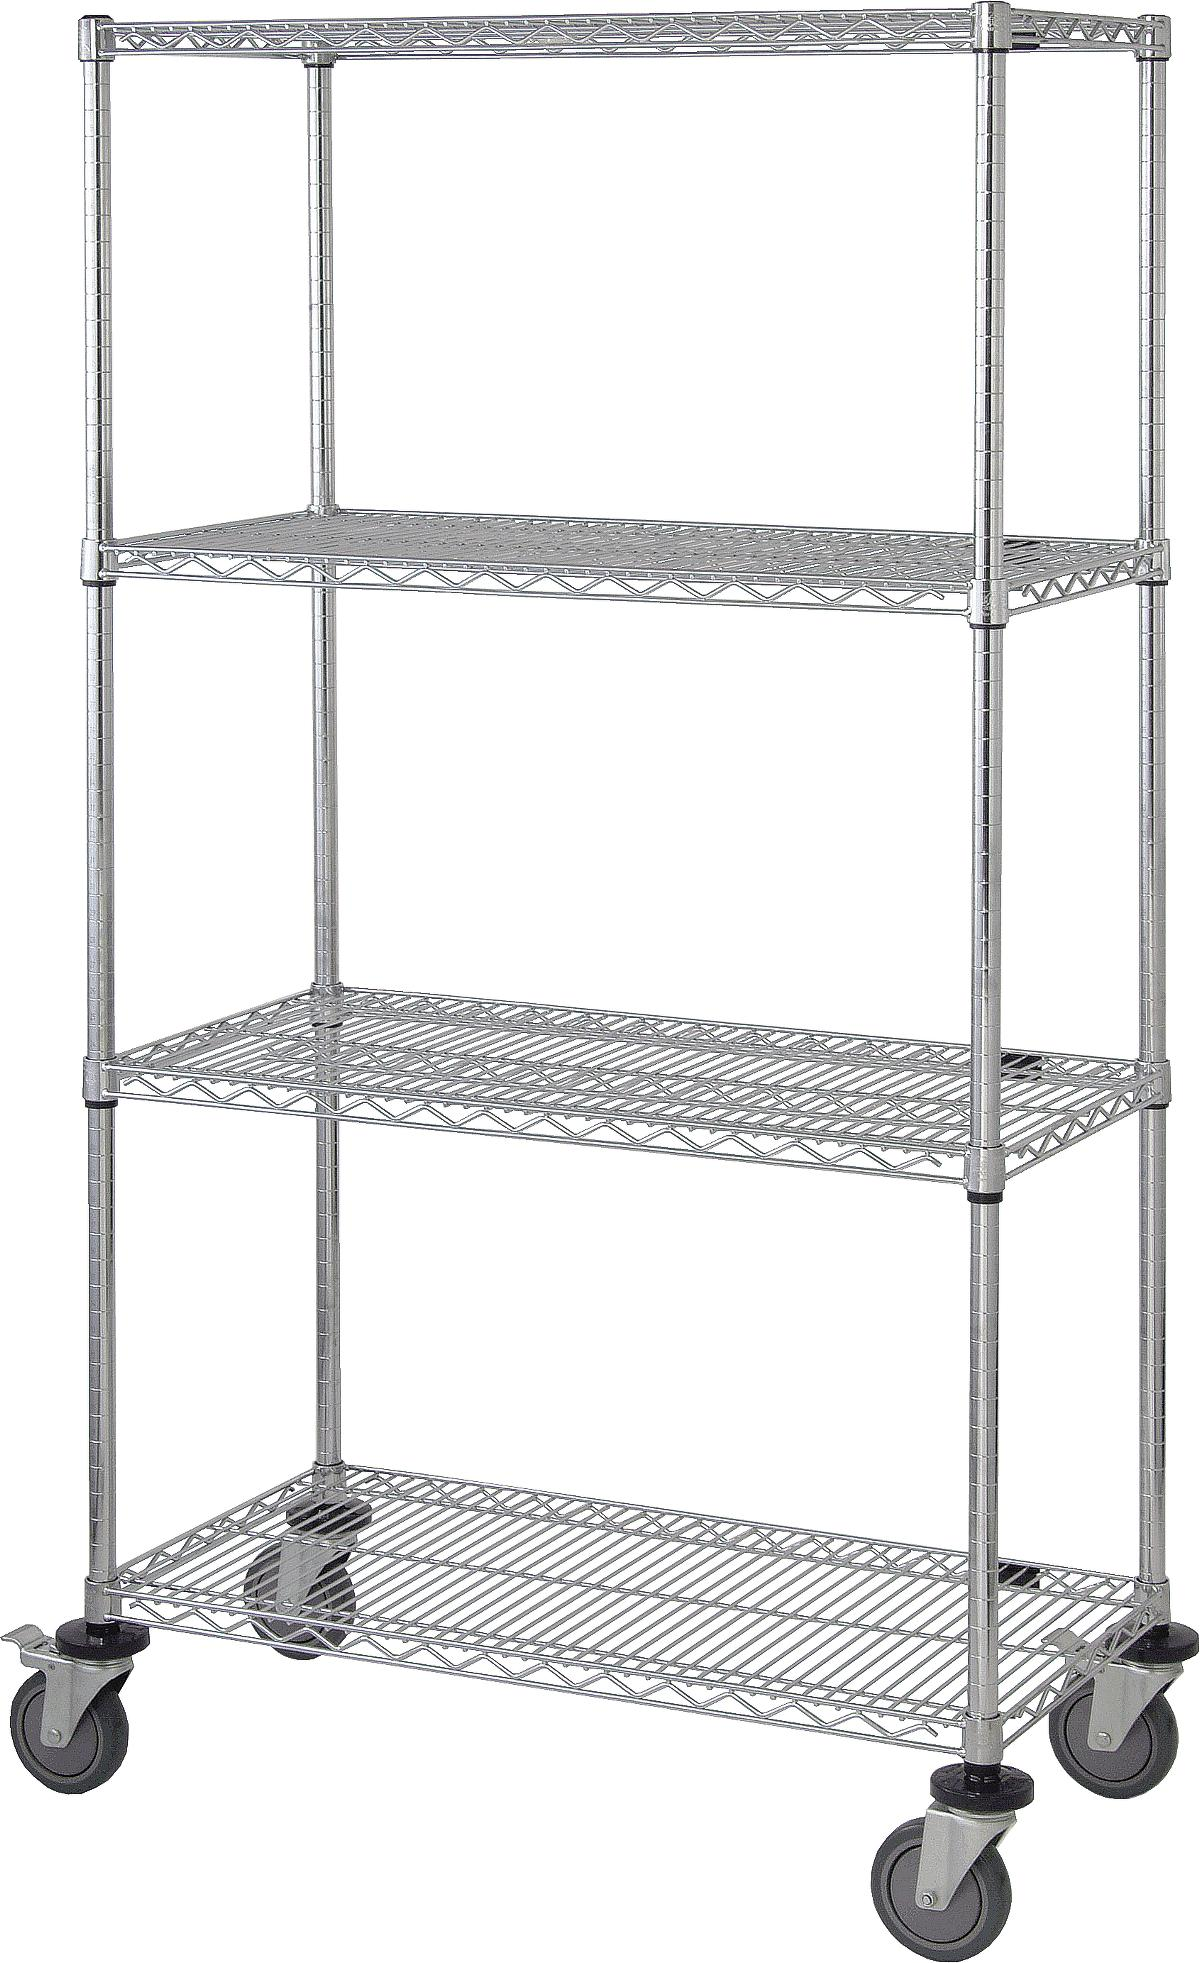 Mobile Shelf Carts with Four Wire Shelves | Medline Industries, Inc.